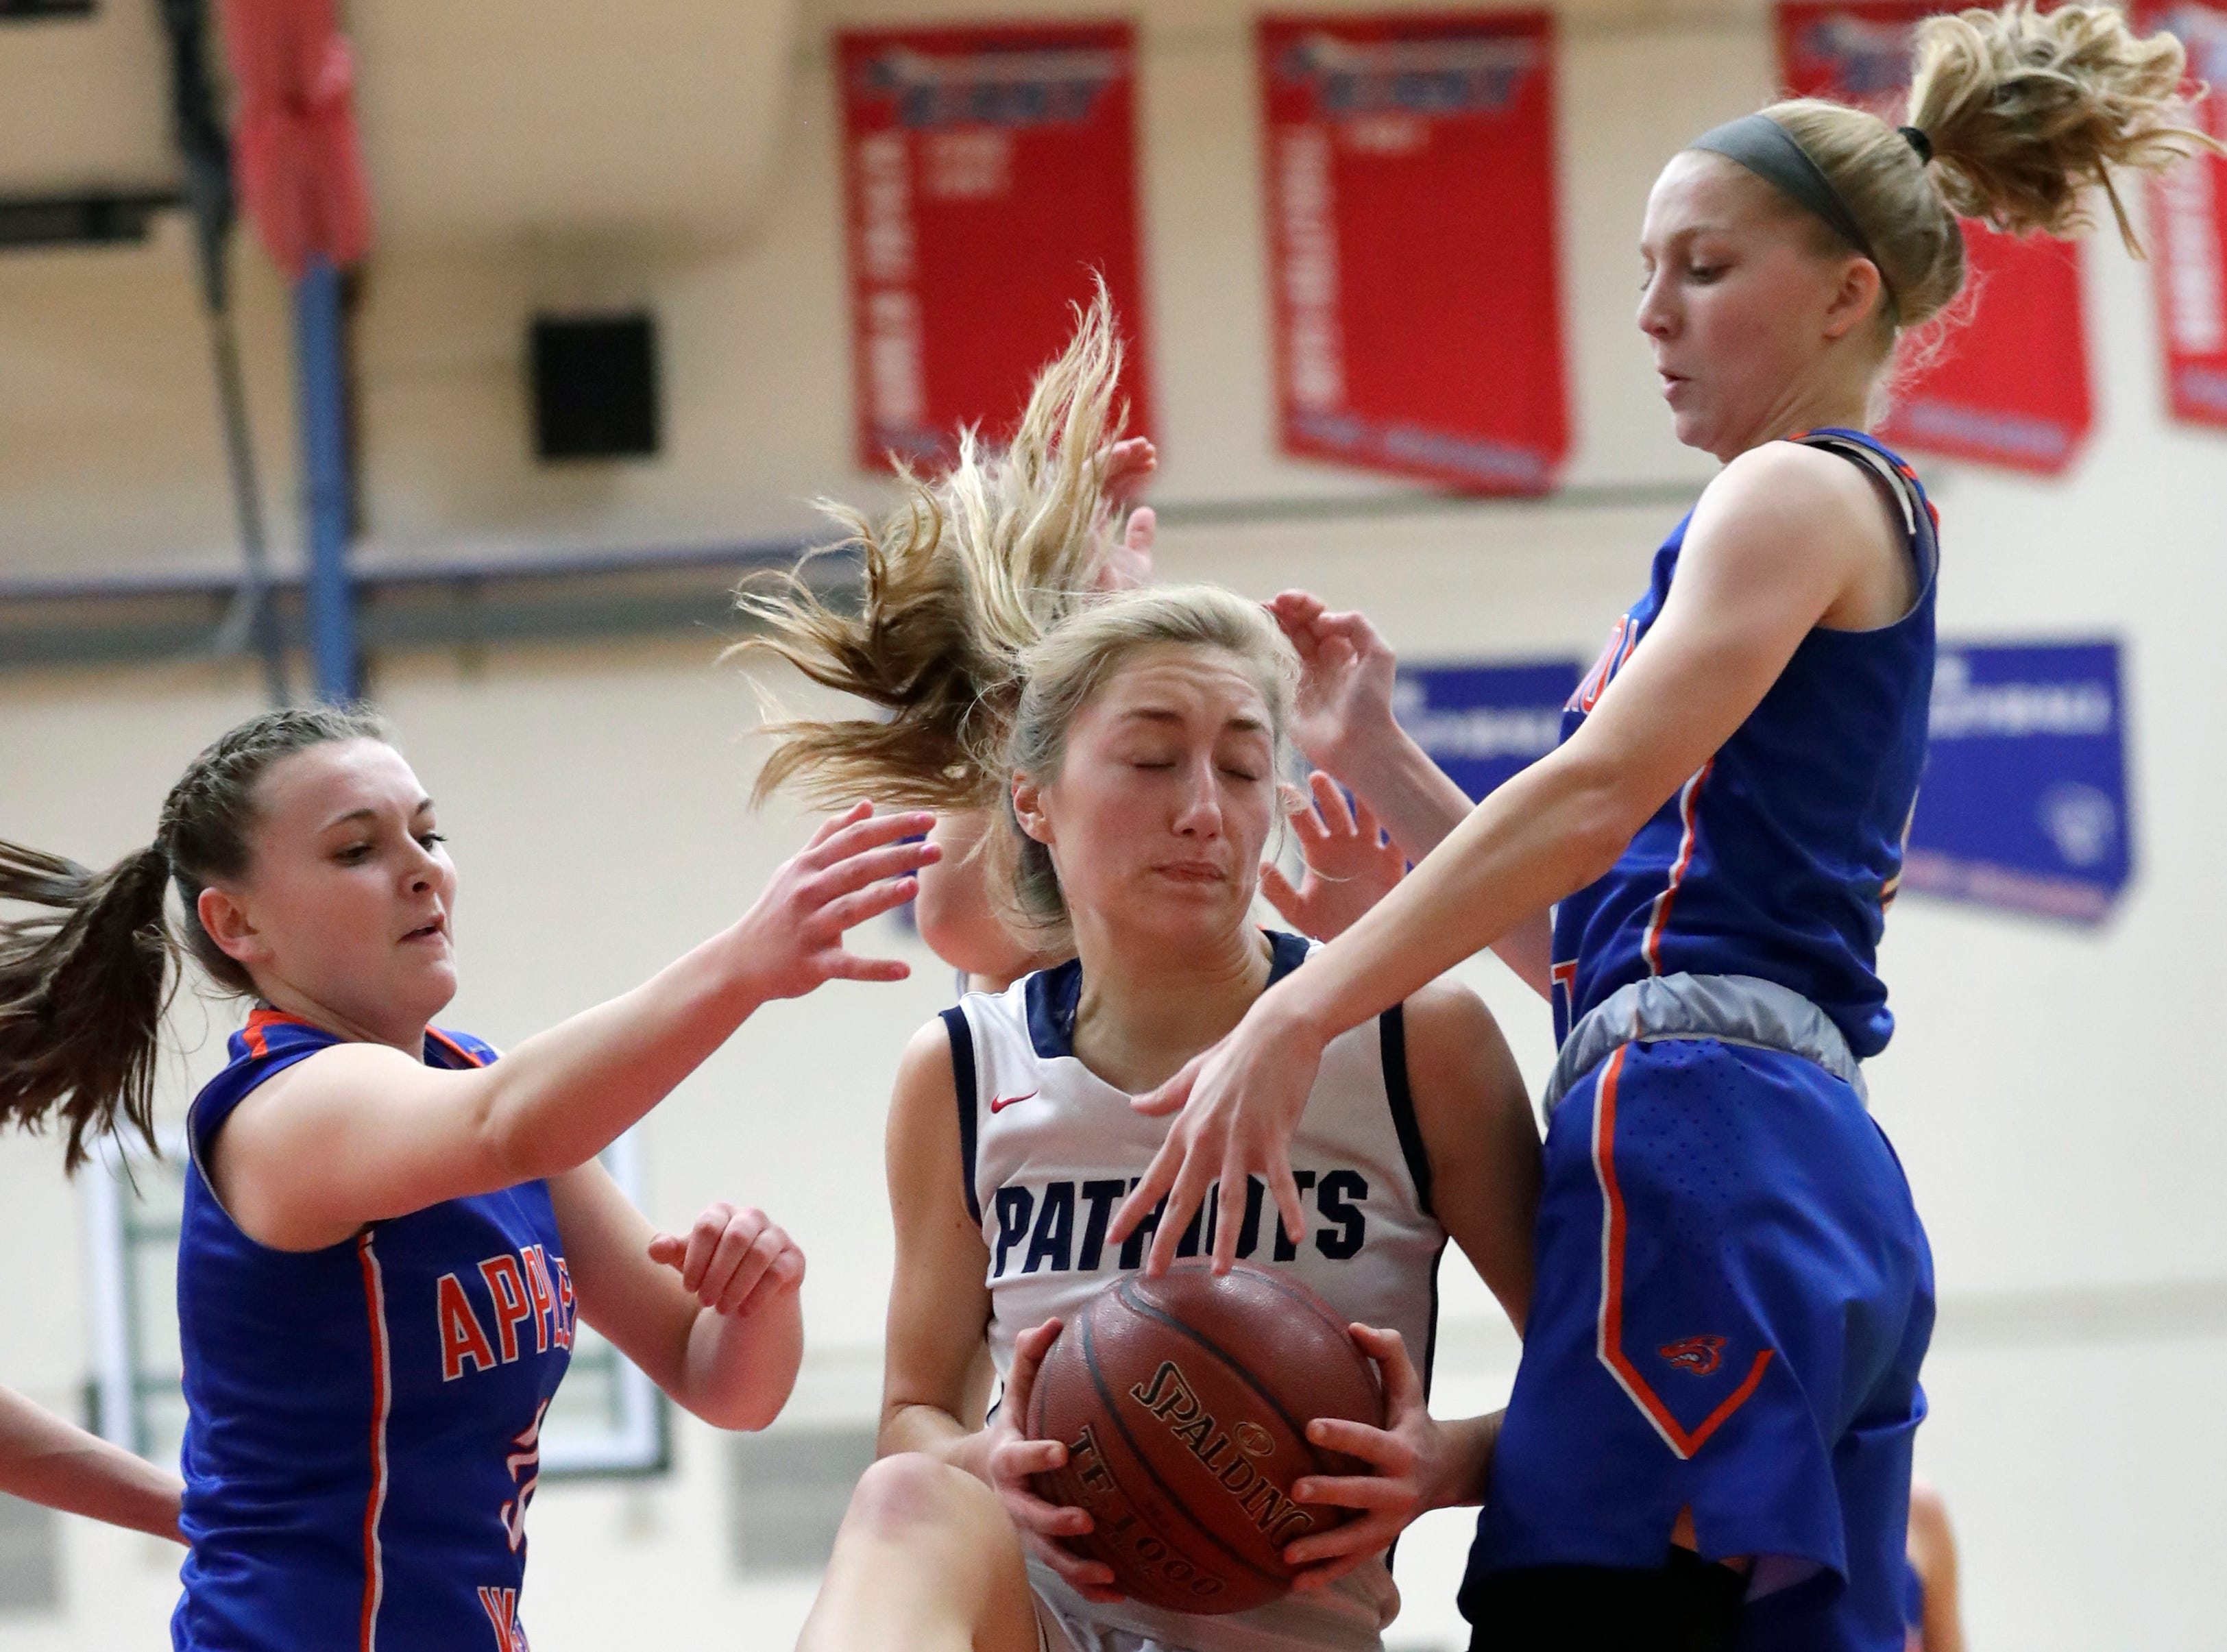 Appleton East High School's Cameron Neubauer, center, drives to the basket against Appleton West High School's Christy Fortune, left, and Jamie Winsted, right, during their girls basketball game Friday, January 11, 2019, at Appleton East High School in Appleton, Wis. 